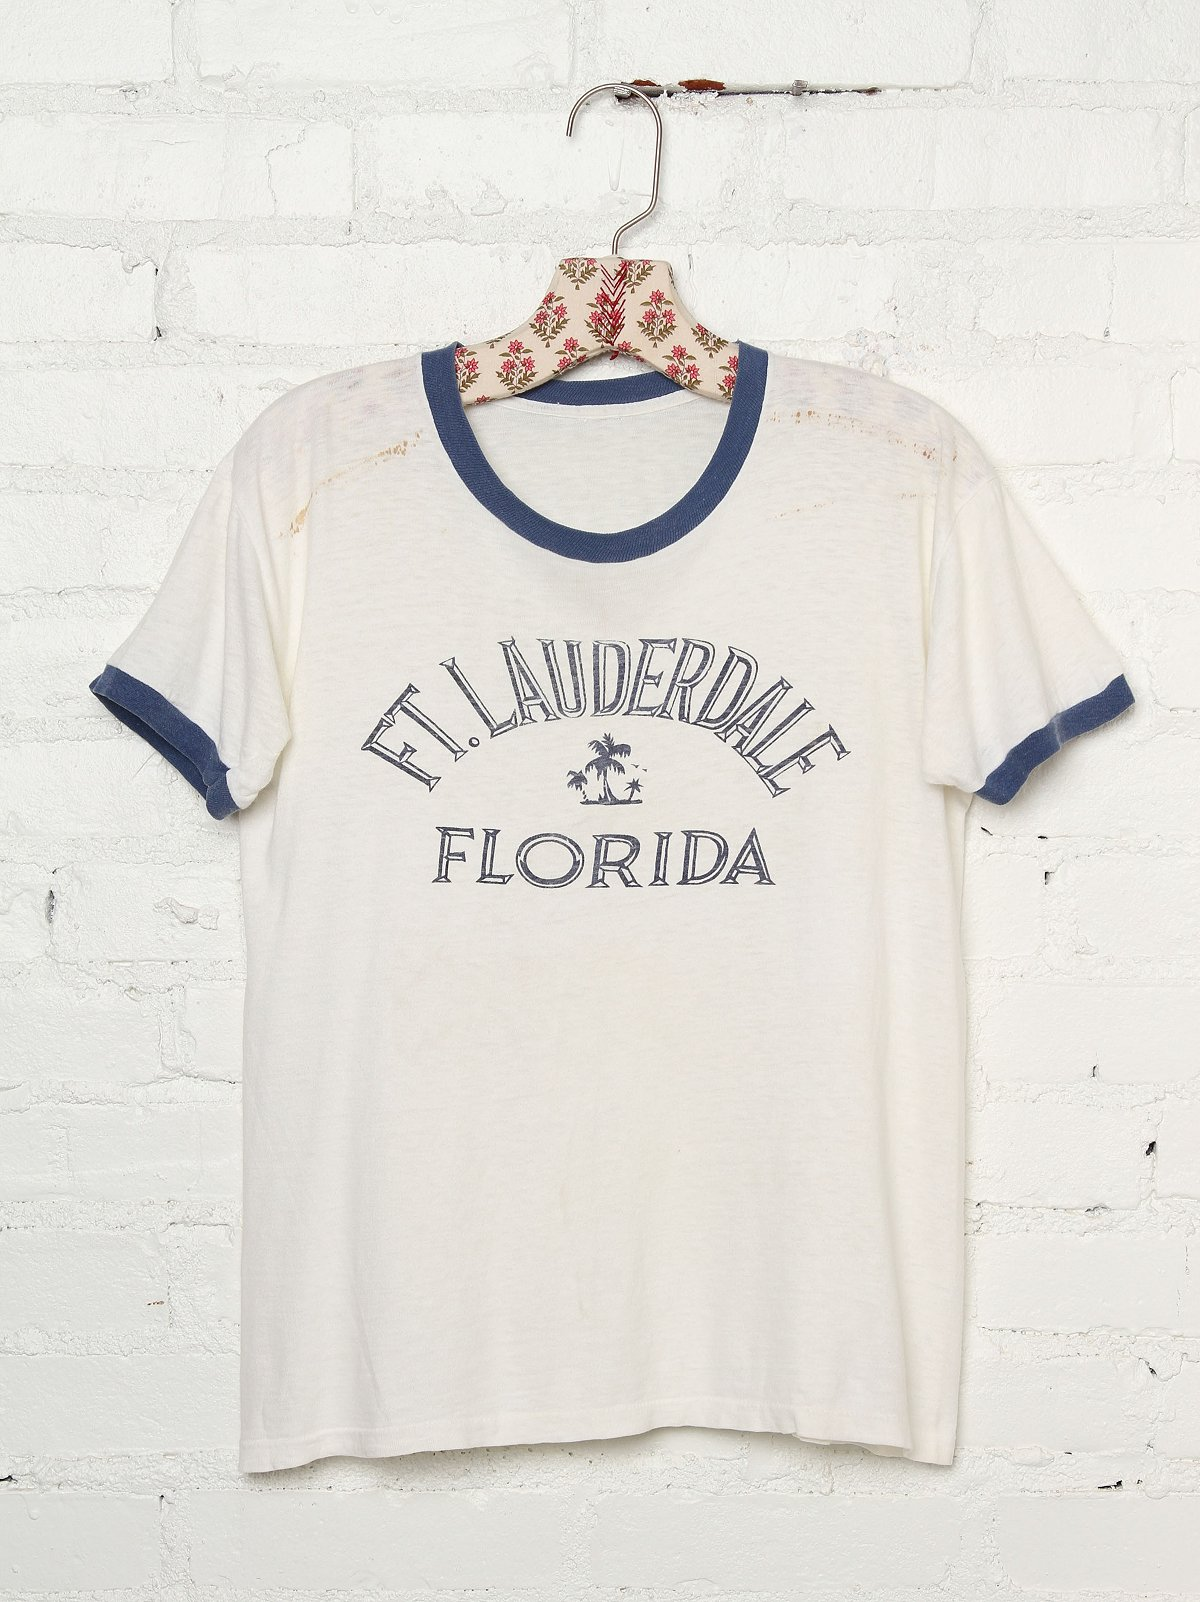 Vintage Ft. Lauderdale Florida Graphic Tee